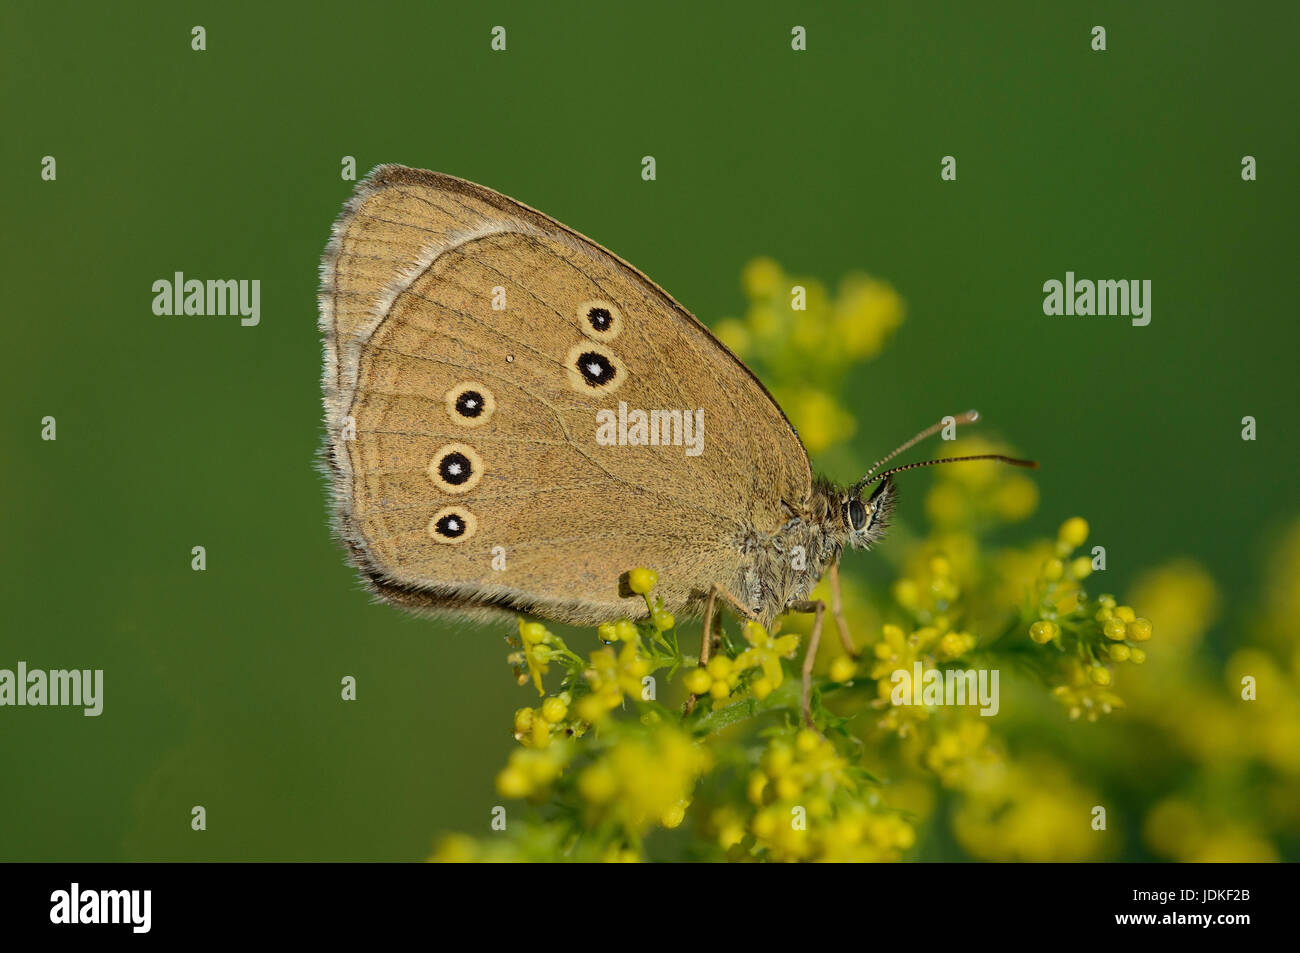 Brown forest bird sits on a yellow flower umbel, Brauner Waldvogel sitzt auf einer gelben Bluetendolde - Stock Image